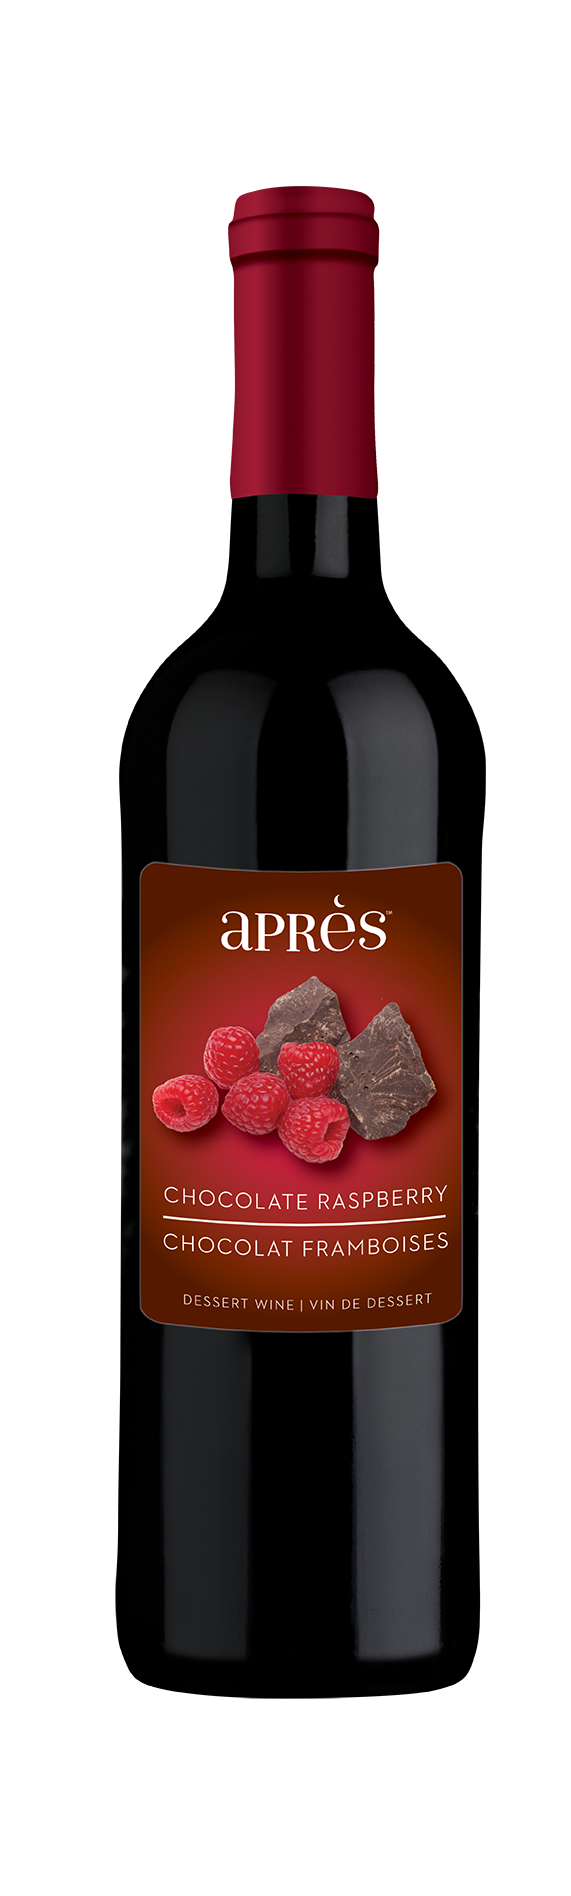 Apres Chocolate Raspberry (Limited Release)